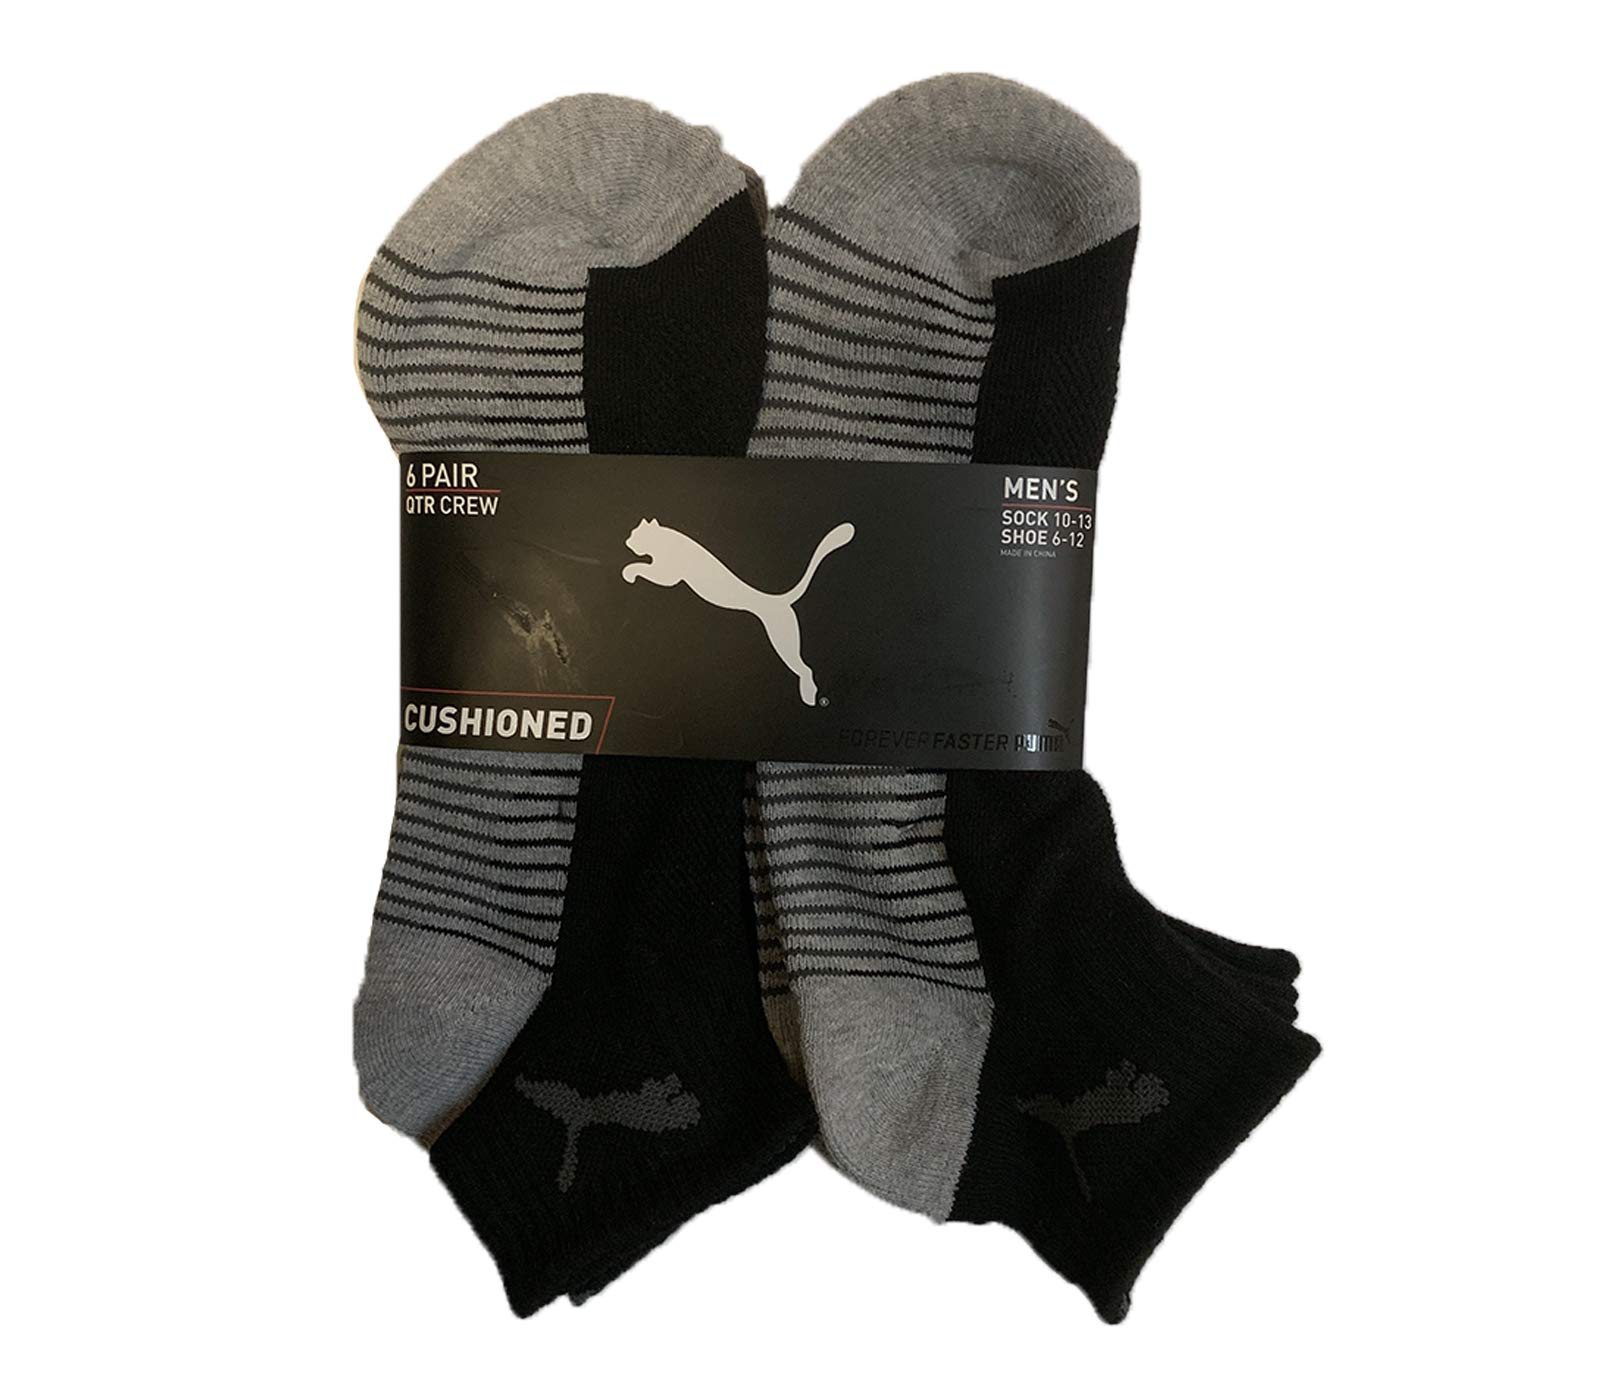 Puma Men's 6 Pack Quarter Crew Socks (Black/Gray 6, Sock 10-13, Shoe 6-12) by PUMA